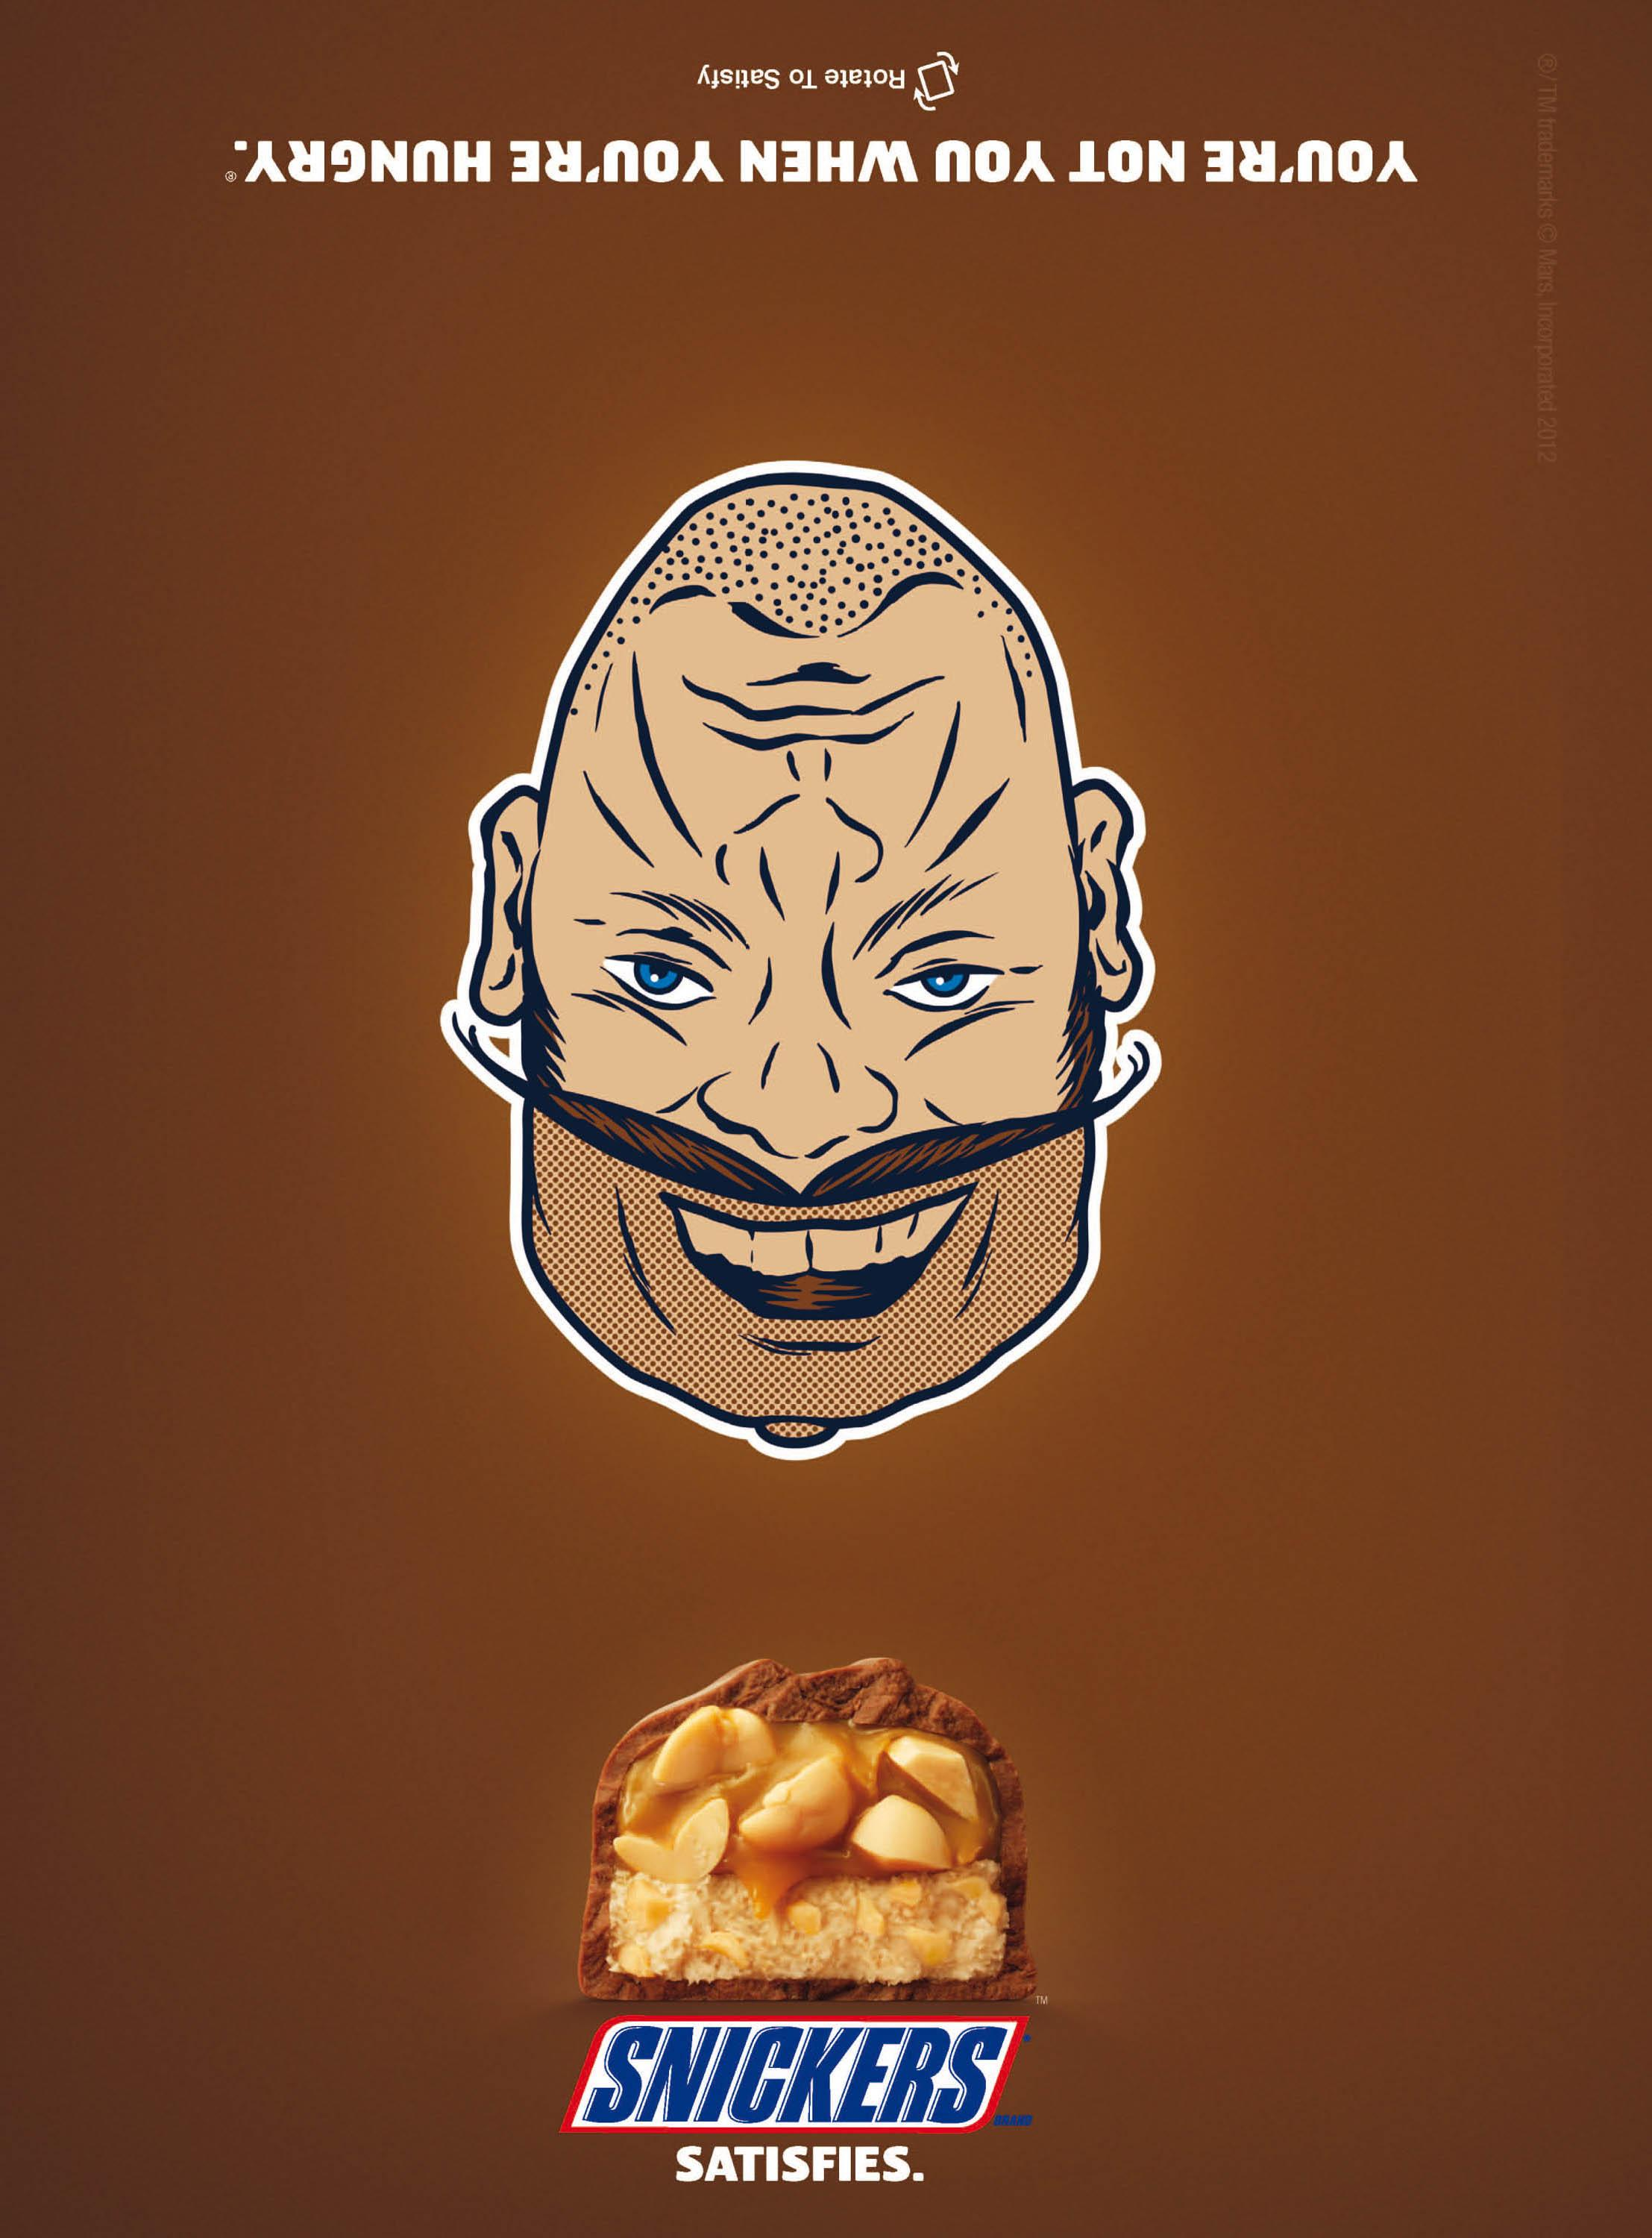 Snickers-Faces-Baseball-Cap21.jpg (2215×3000)